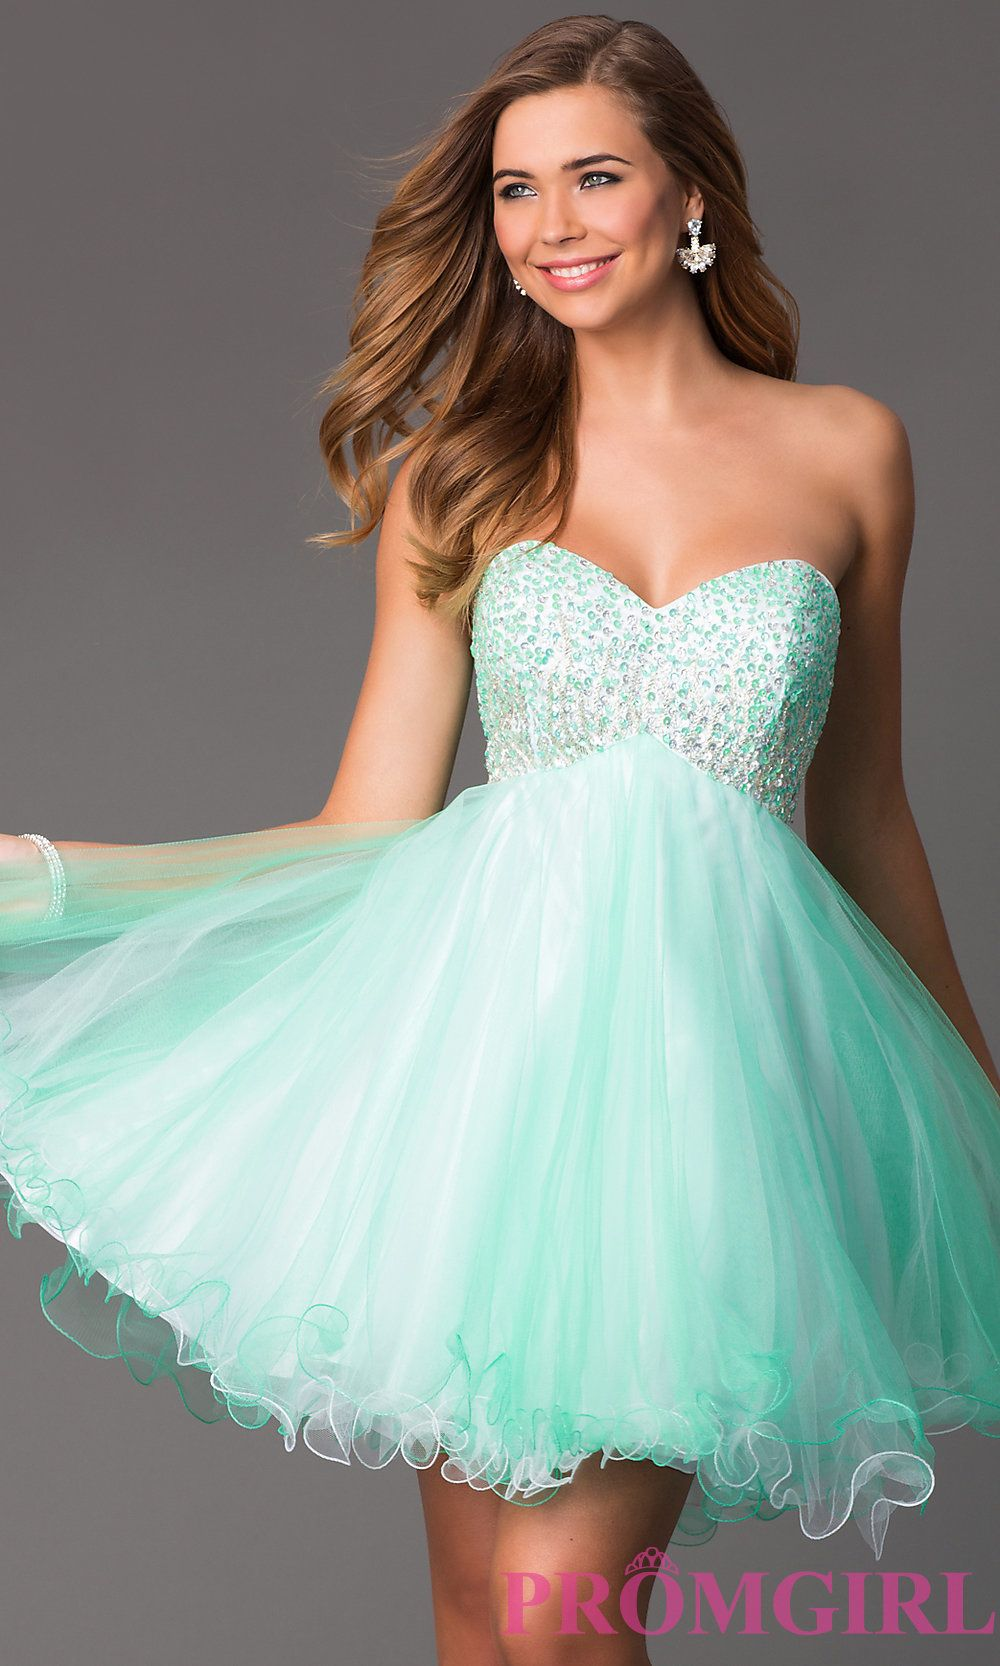 Image of Short Strapless Empire Waist Party Dress Style: HOW-DA ...